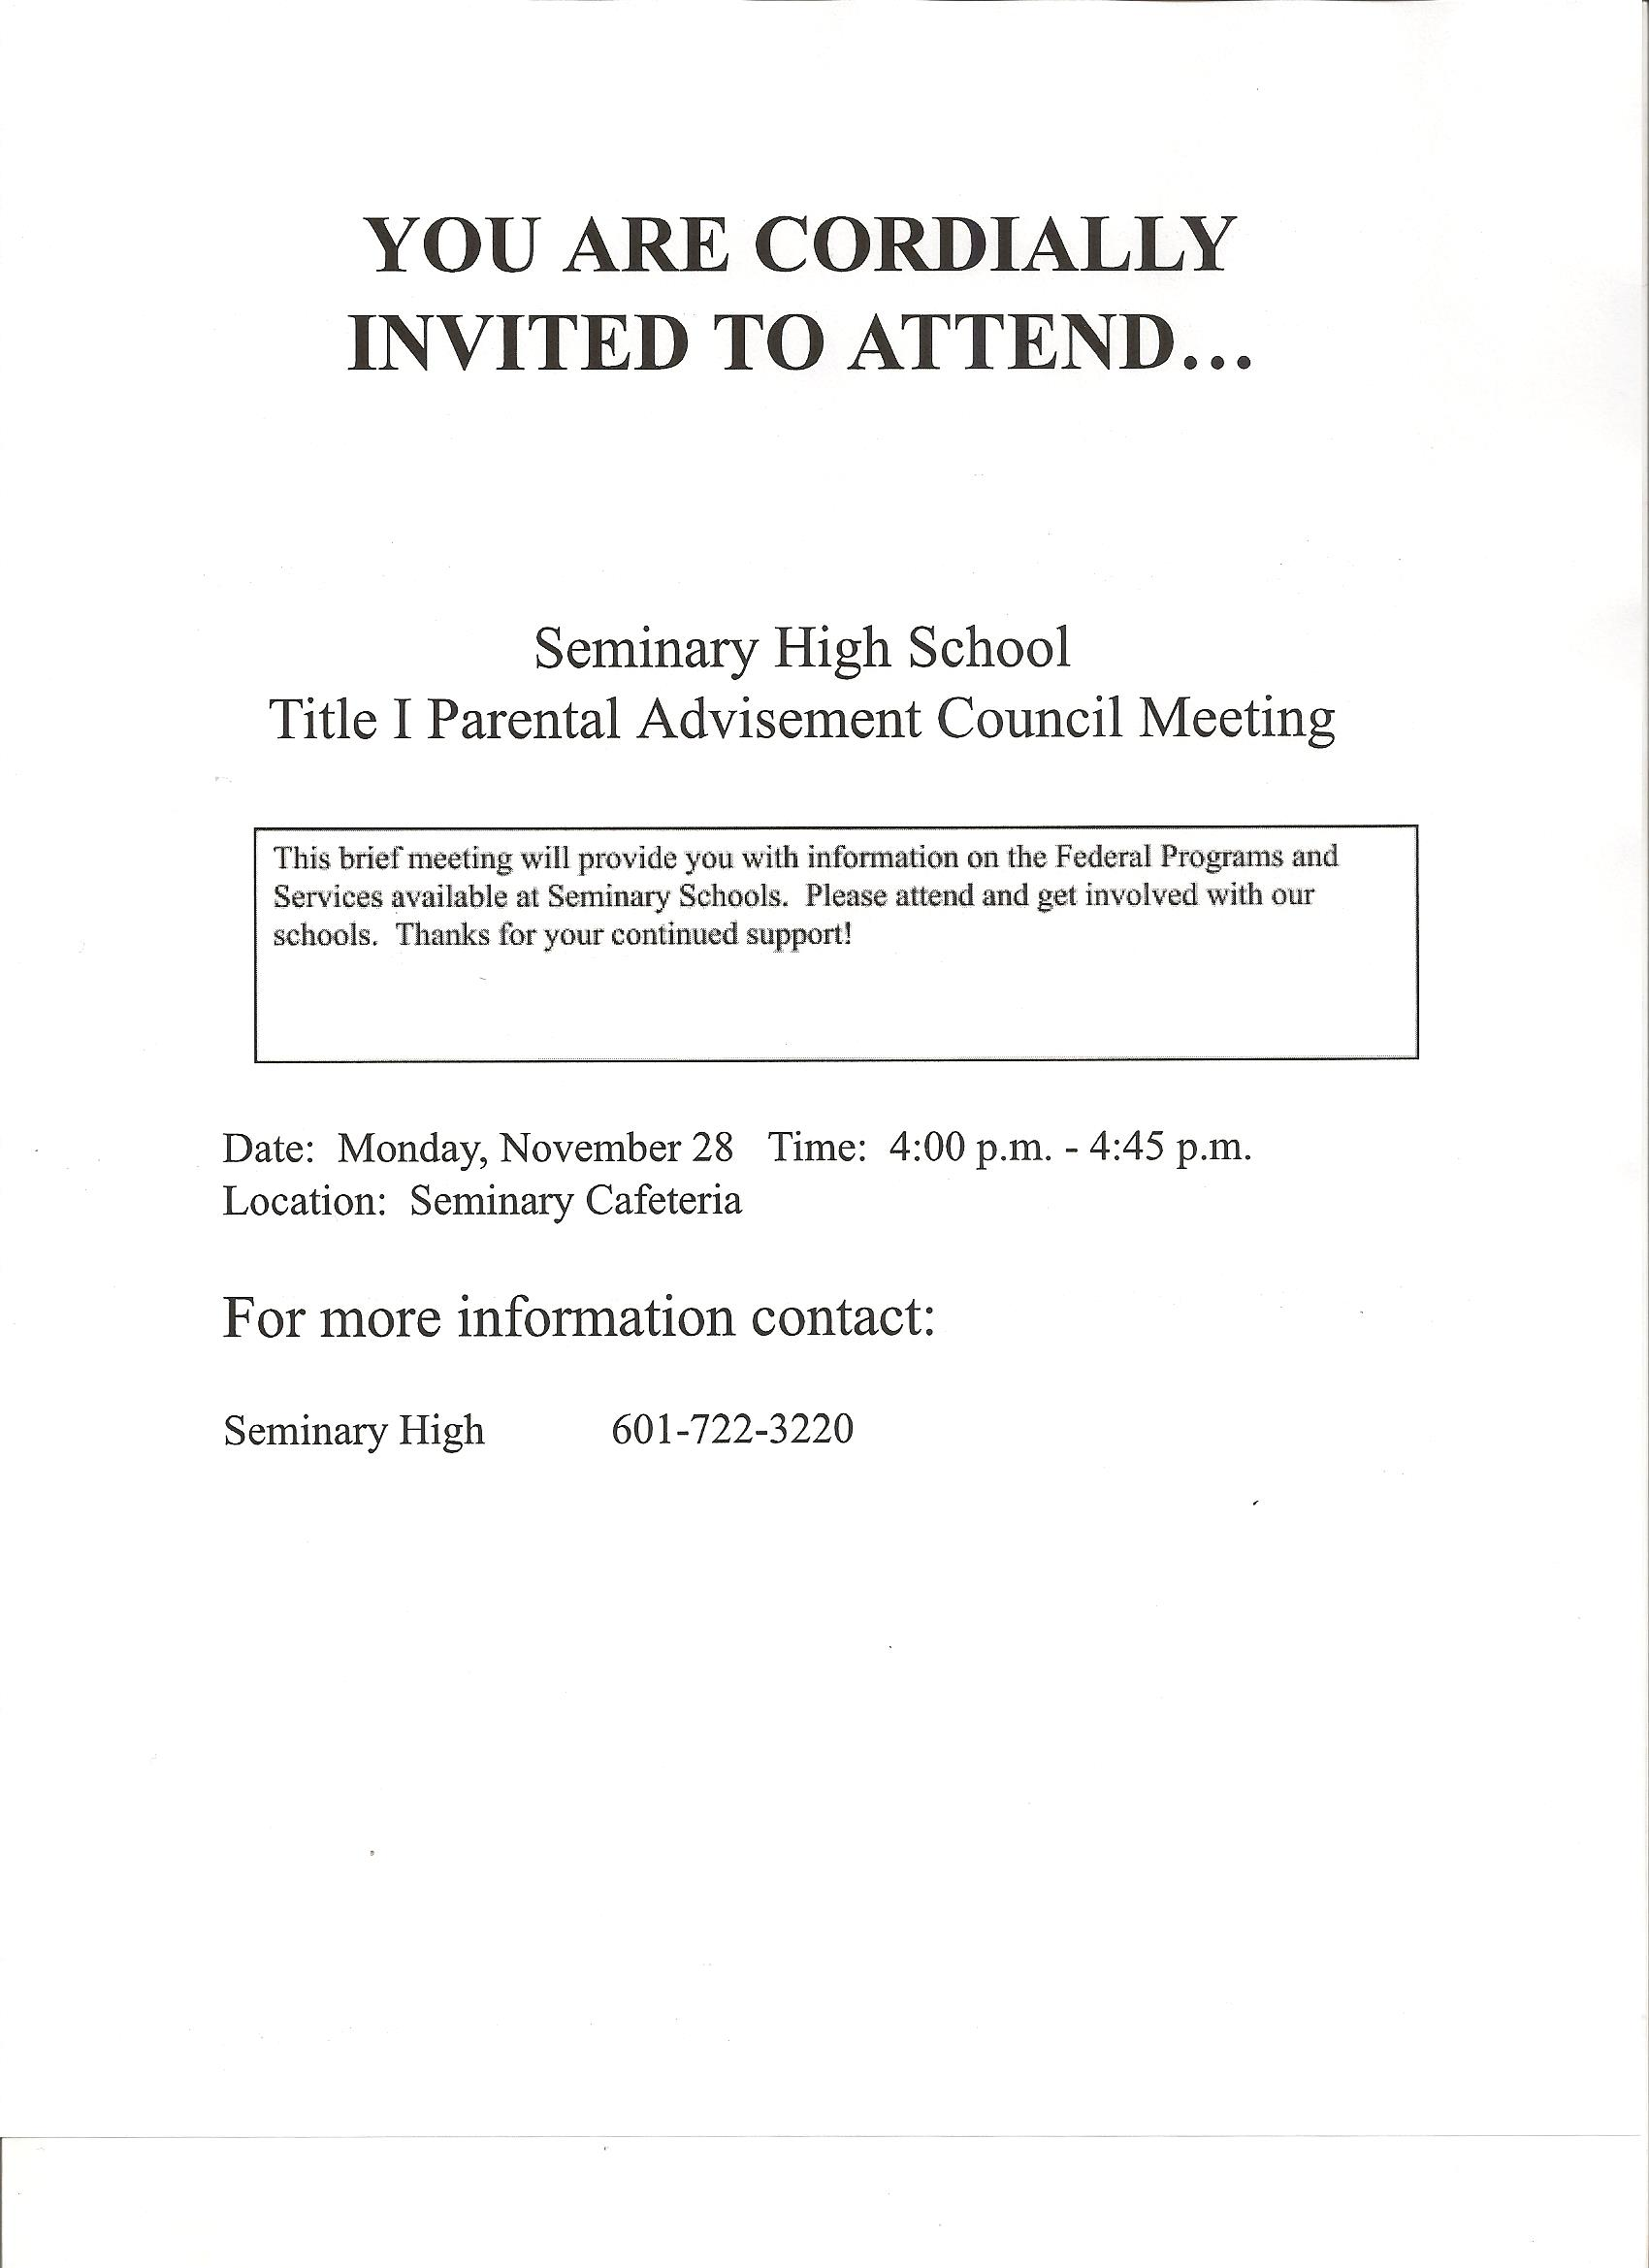 SHS Parent Meeting